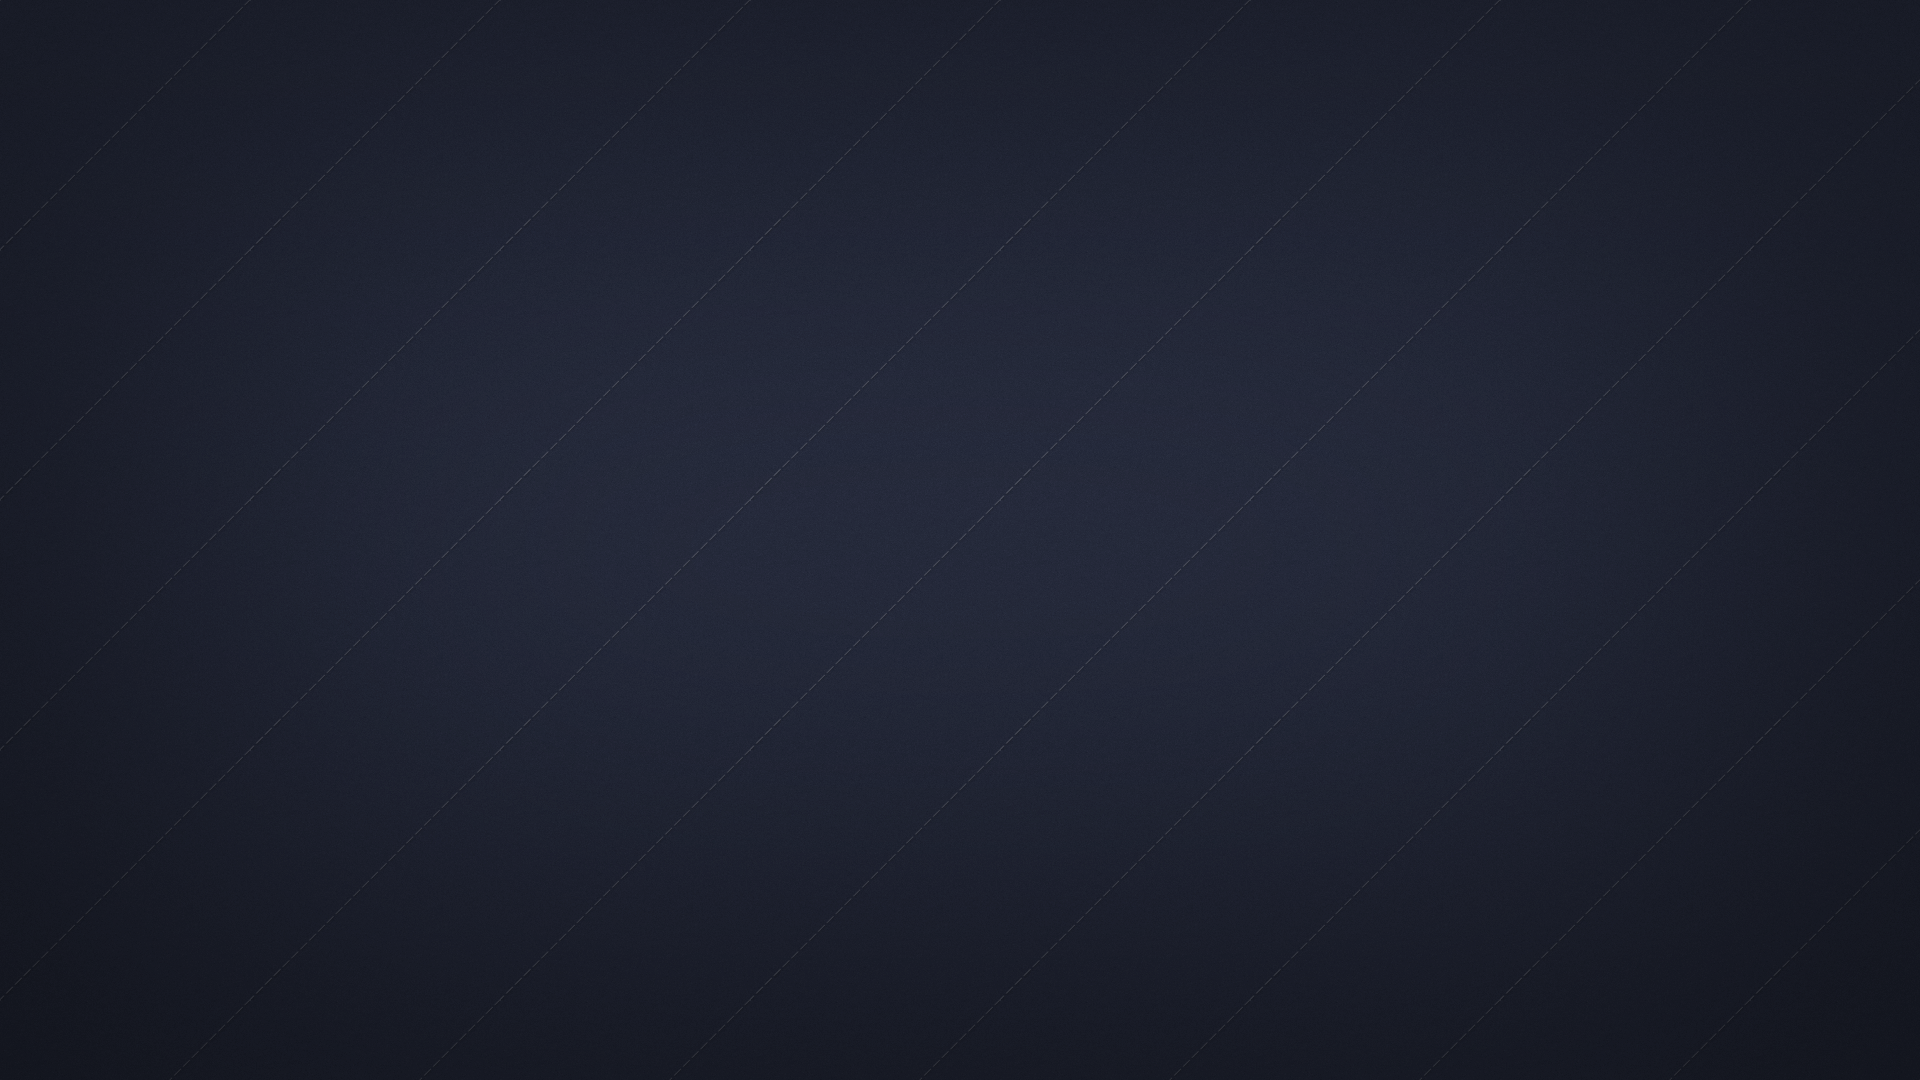 Dark wallpaper mac os style 1920x1080 by edmonam on deviantart - Mac os x wallpaper 1920x1080 ...